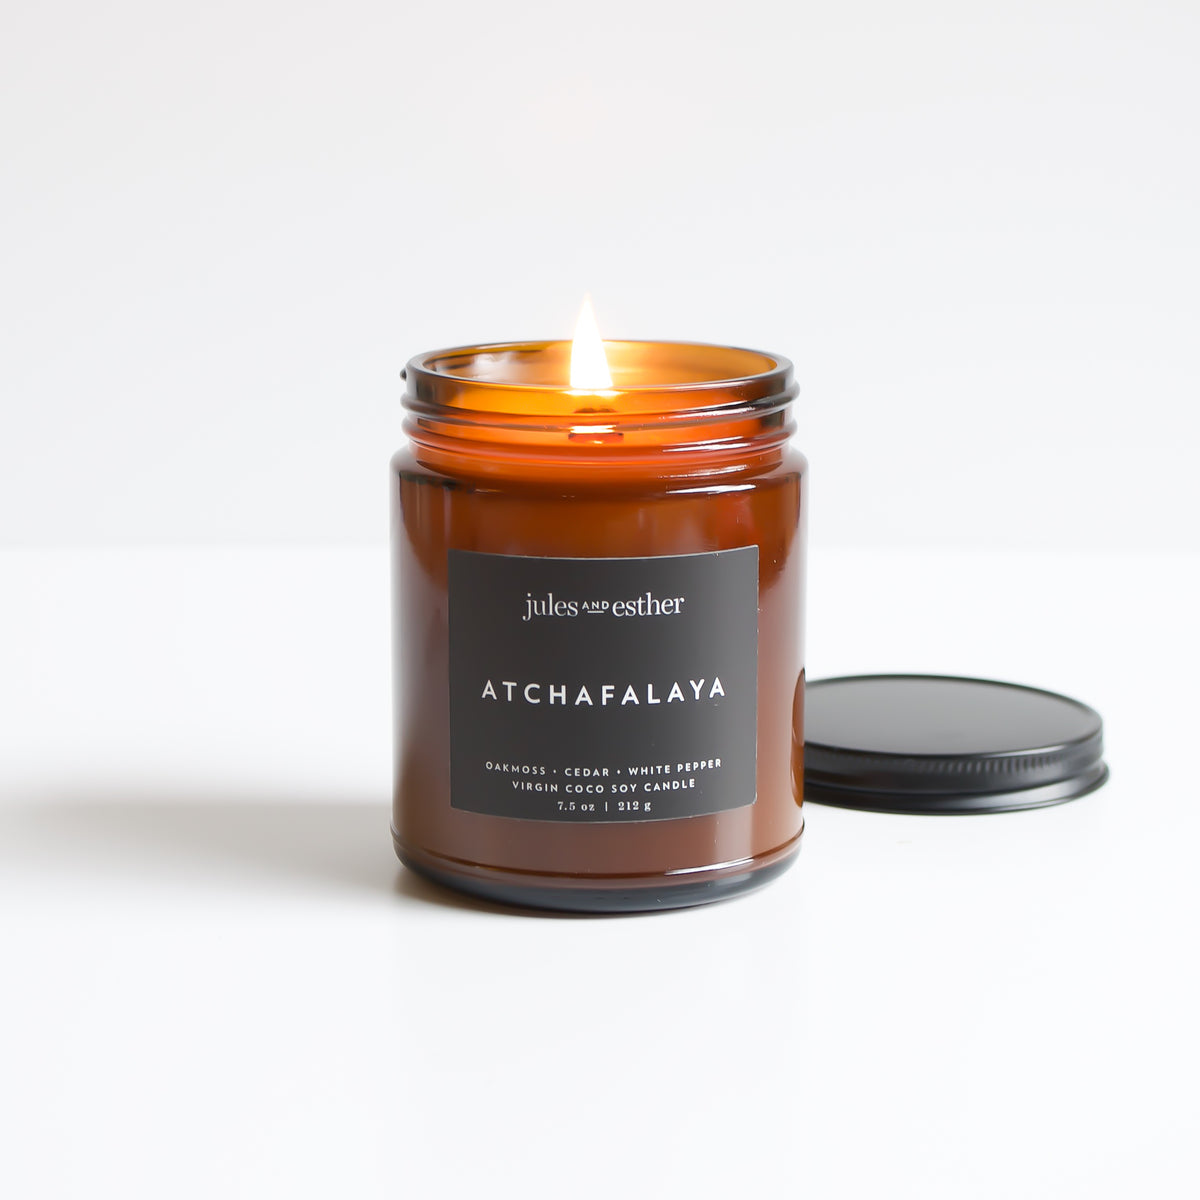 Atchafalaya: Wooden Wick + Virgin Coco Soy Candle